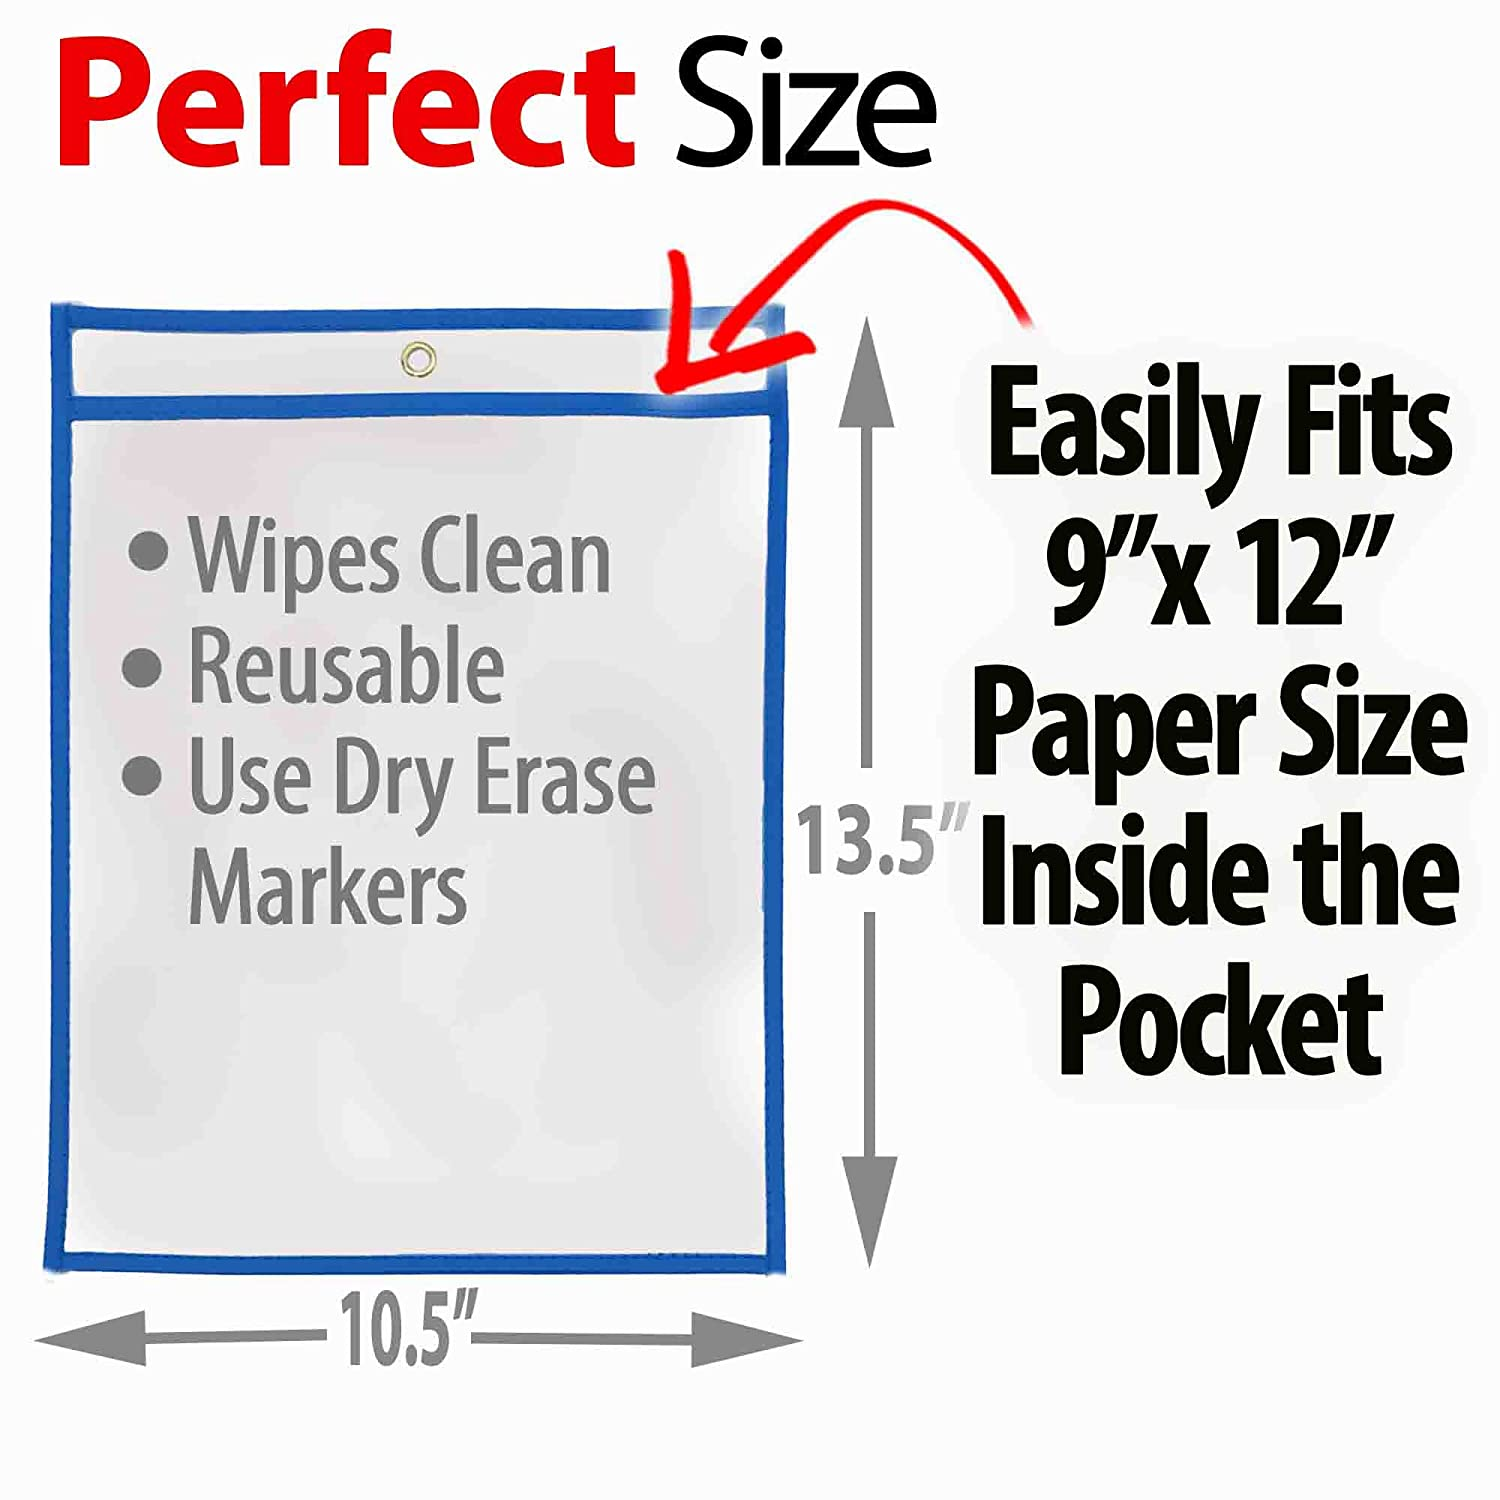 Wipes Clean 20 Pack Multicolored Pockets iPrimio Dry Erase Learning Sheets Fits 9 by 12 Paper in Pocket - Includes 12 Learning Sheets